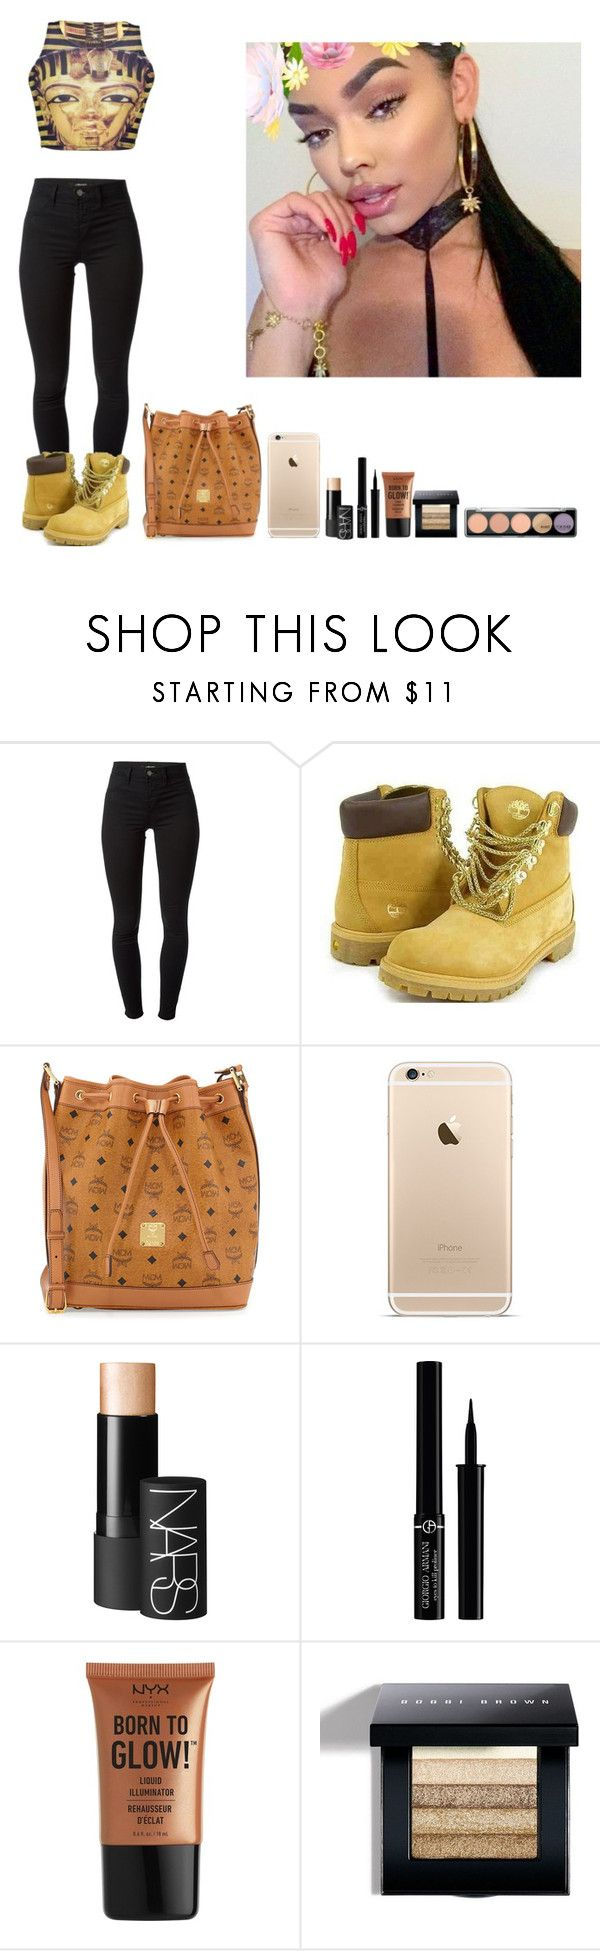 """-Glo Queen"" by thegloup-reina on Polyvore featuring J Brand, Timberland, MCM, NARS Cosmetics, Giorgio Armani, NYX, Bobbi Brown Cosmetics and MAKE UP FOR EVER"